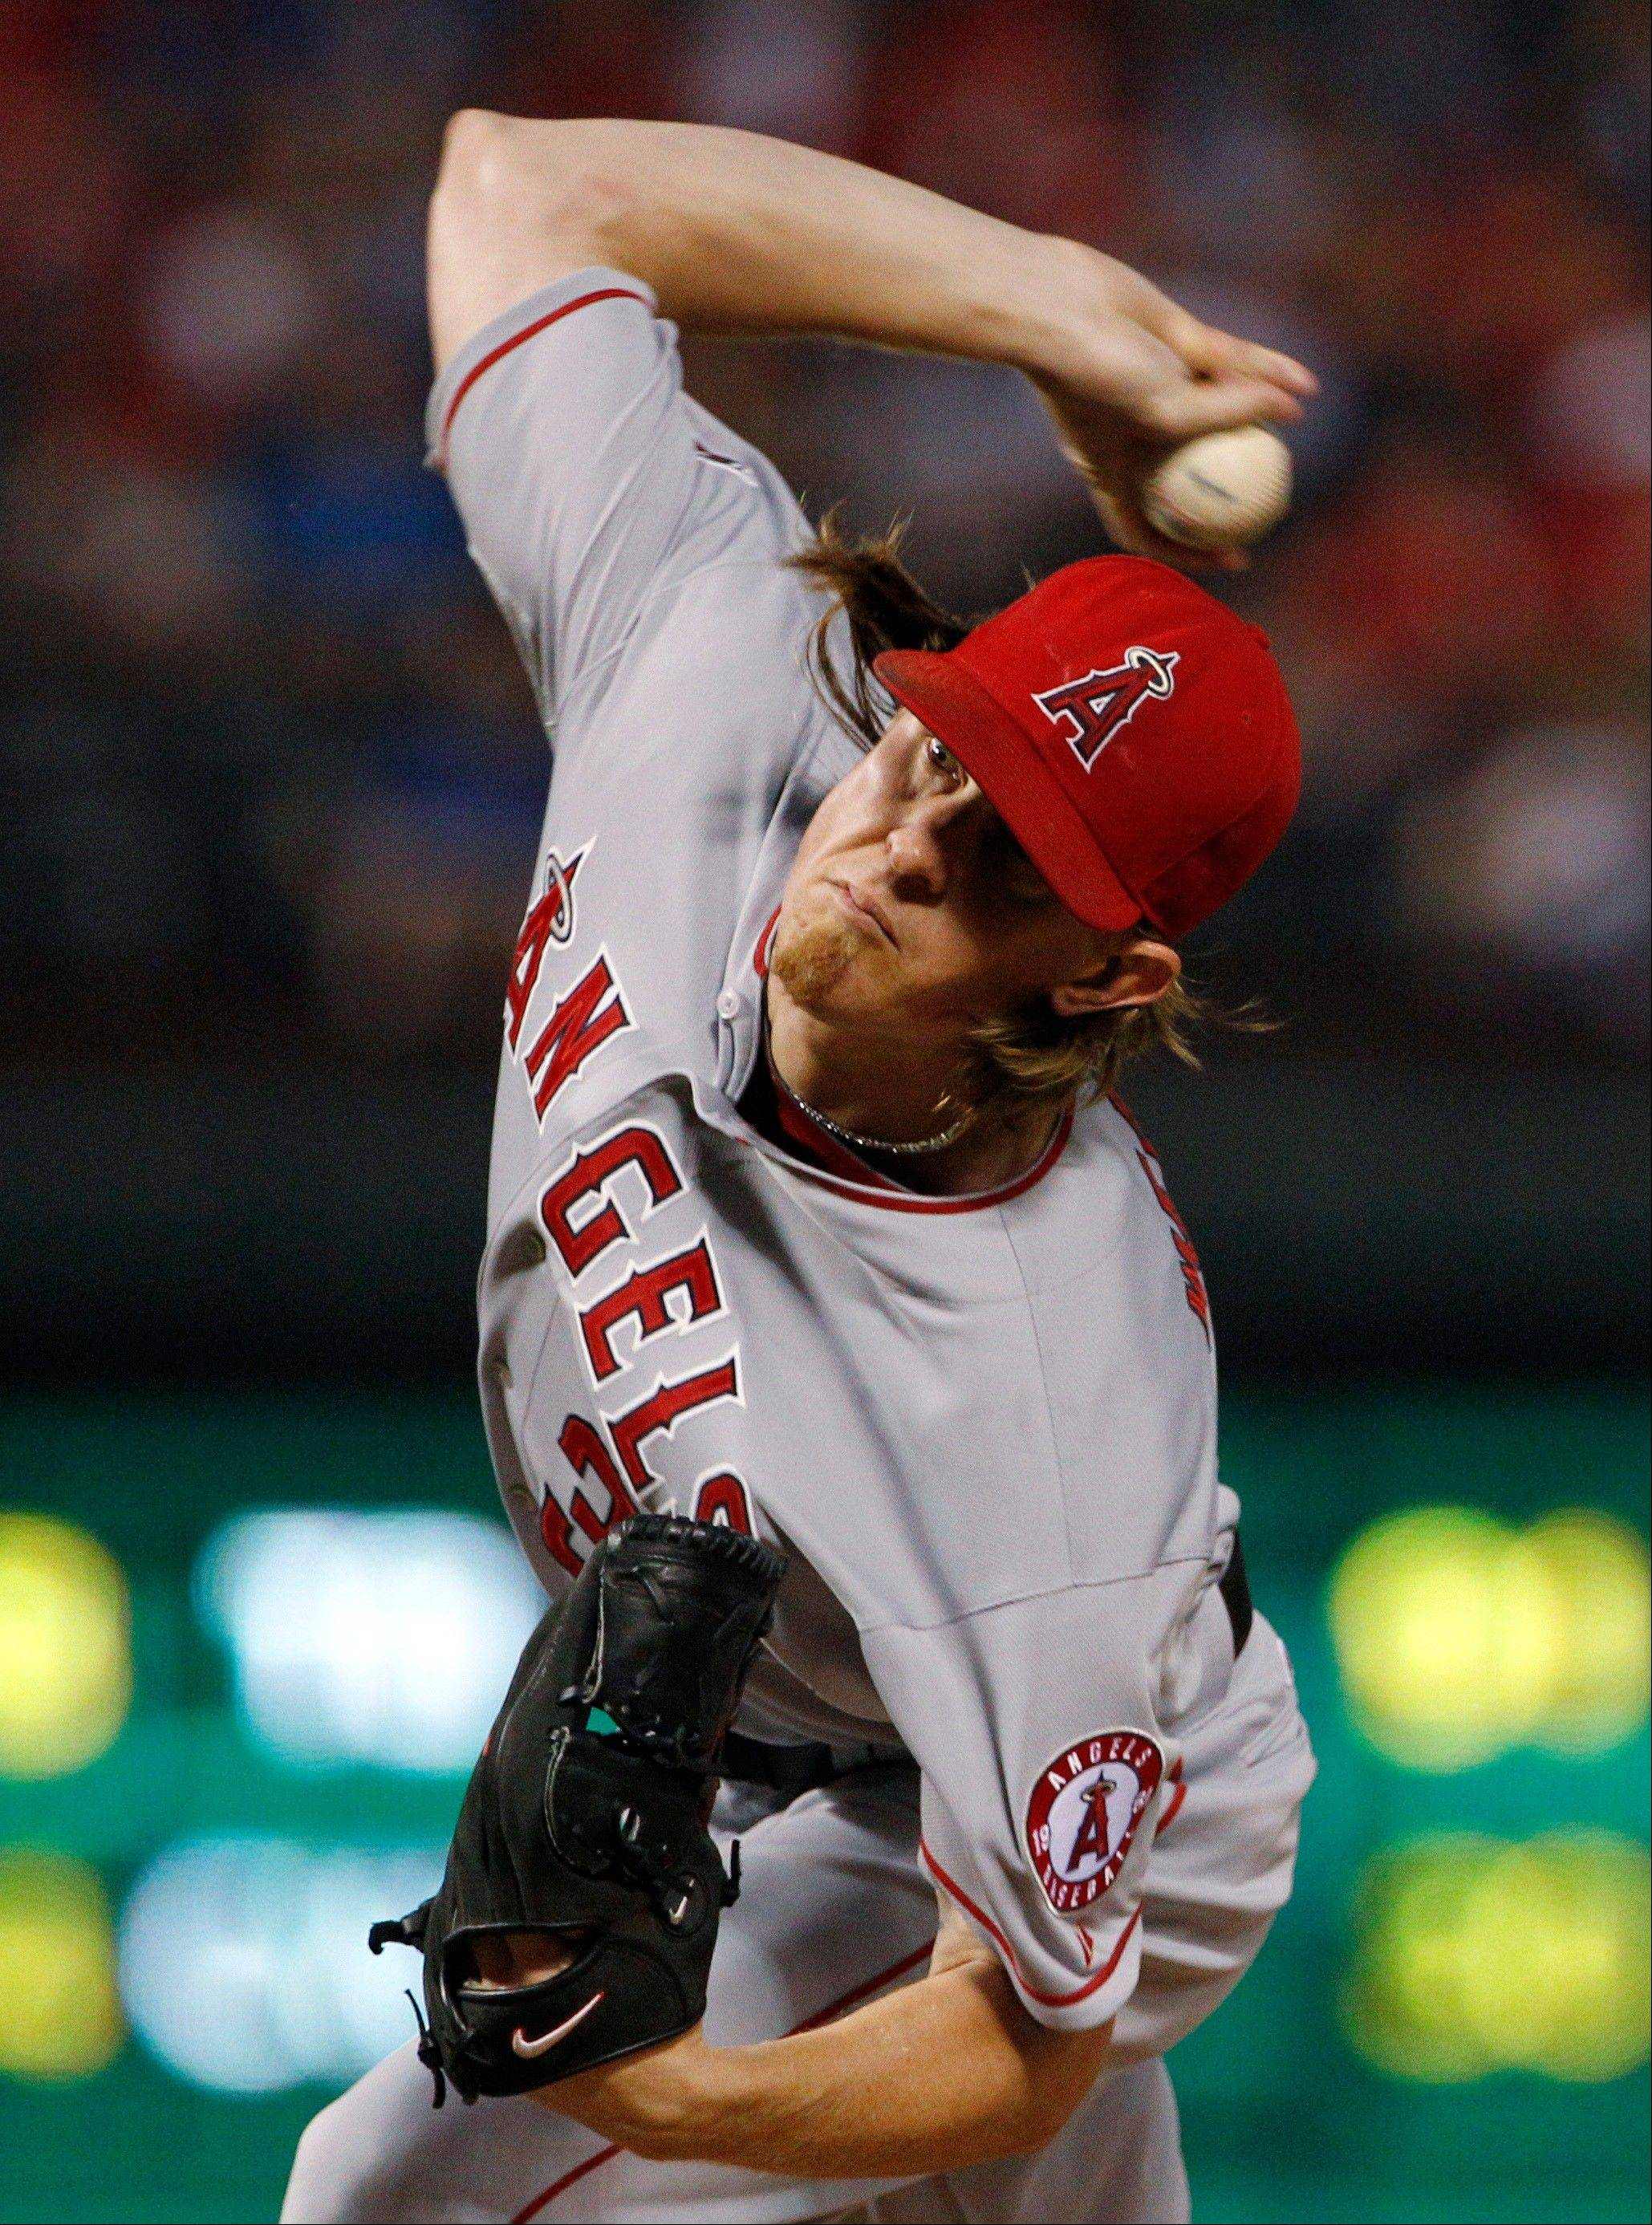 Starting pitcher Jered Weaver on Friday became the Angels' first 20-game winner since Bartolo Colon had 21 in 2005.